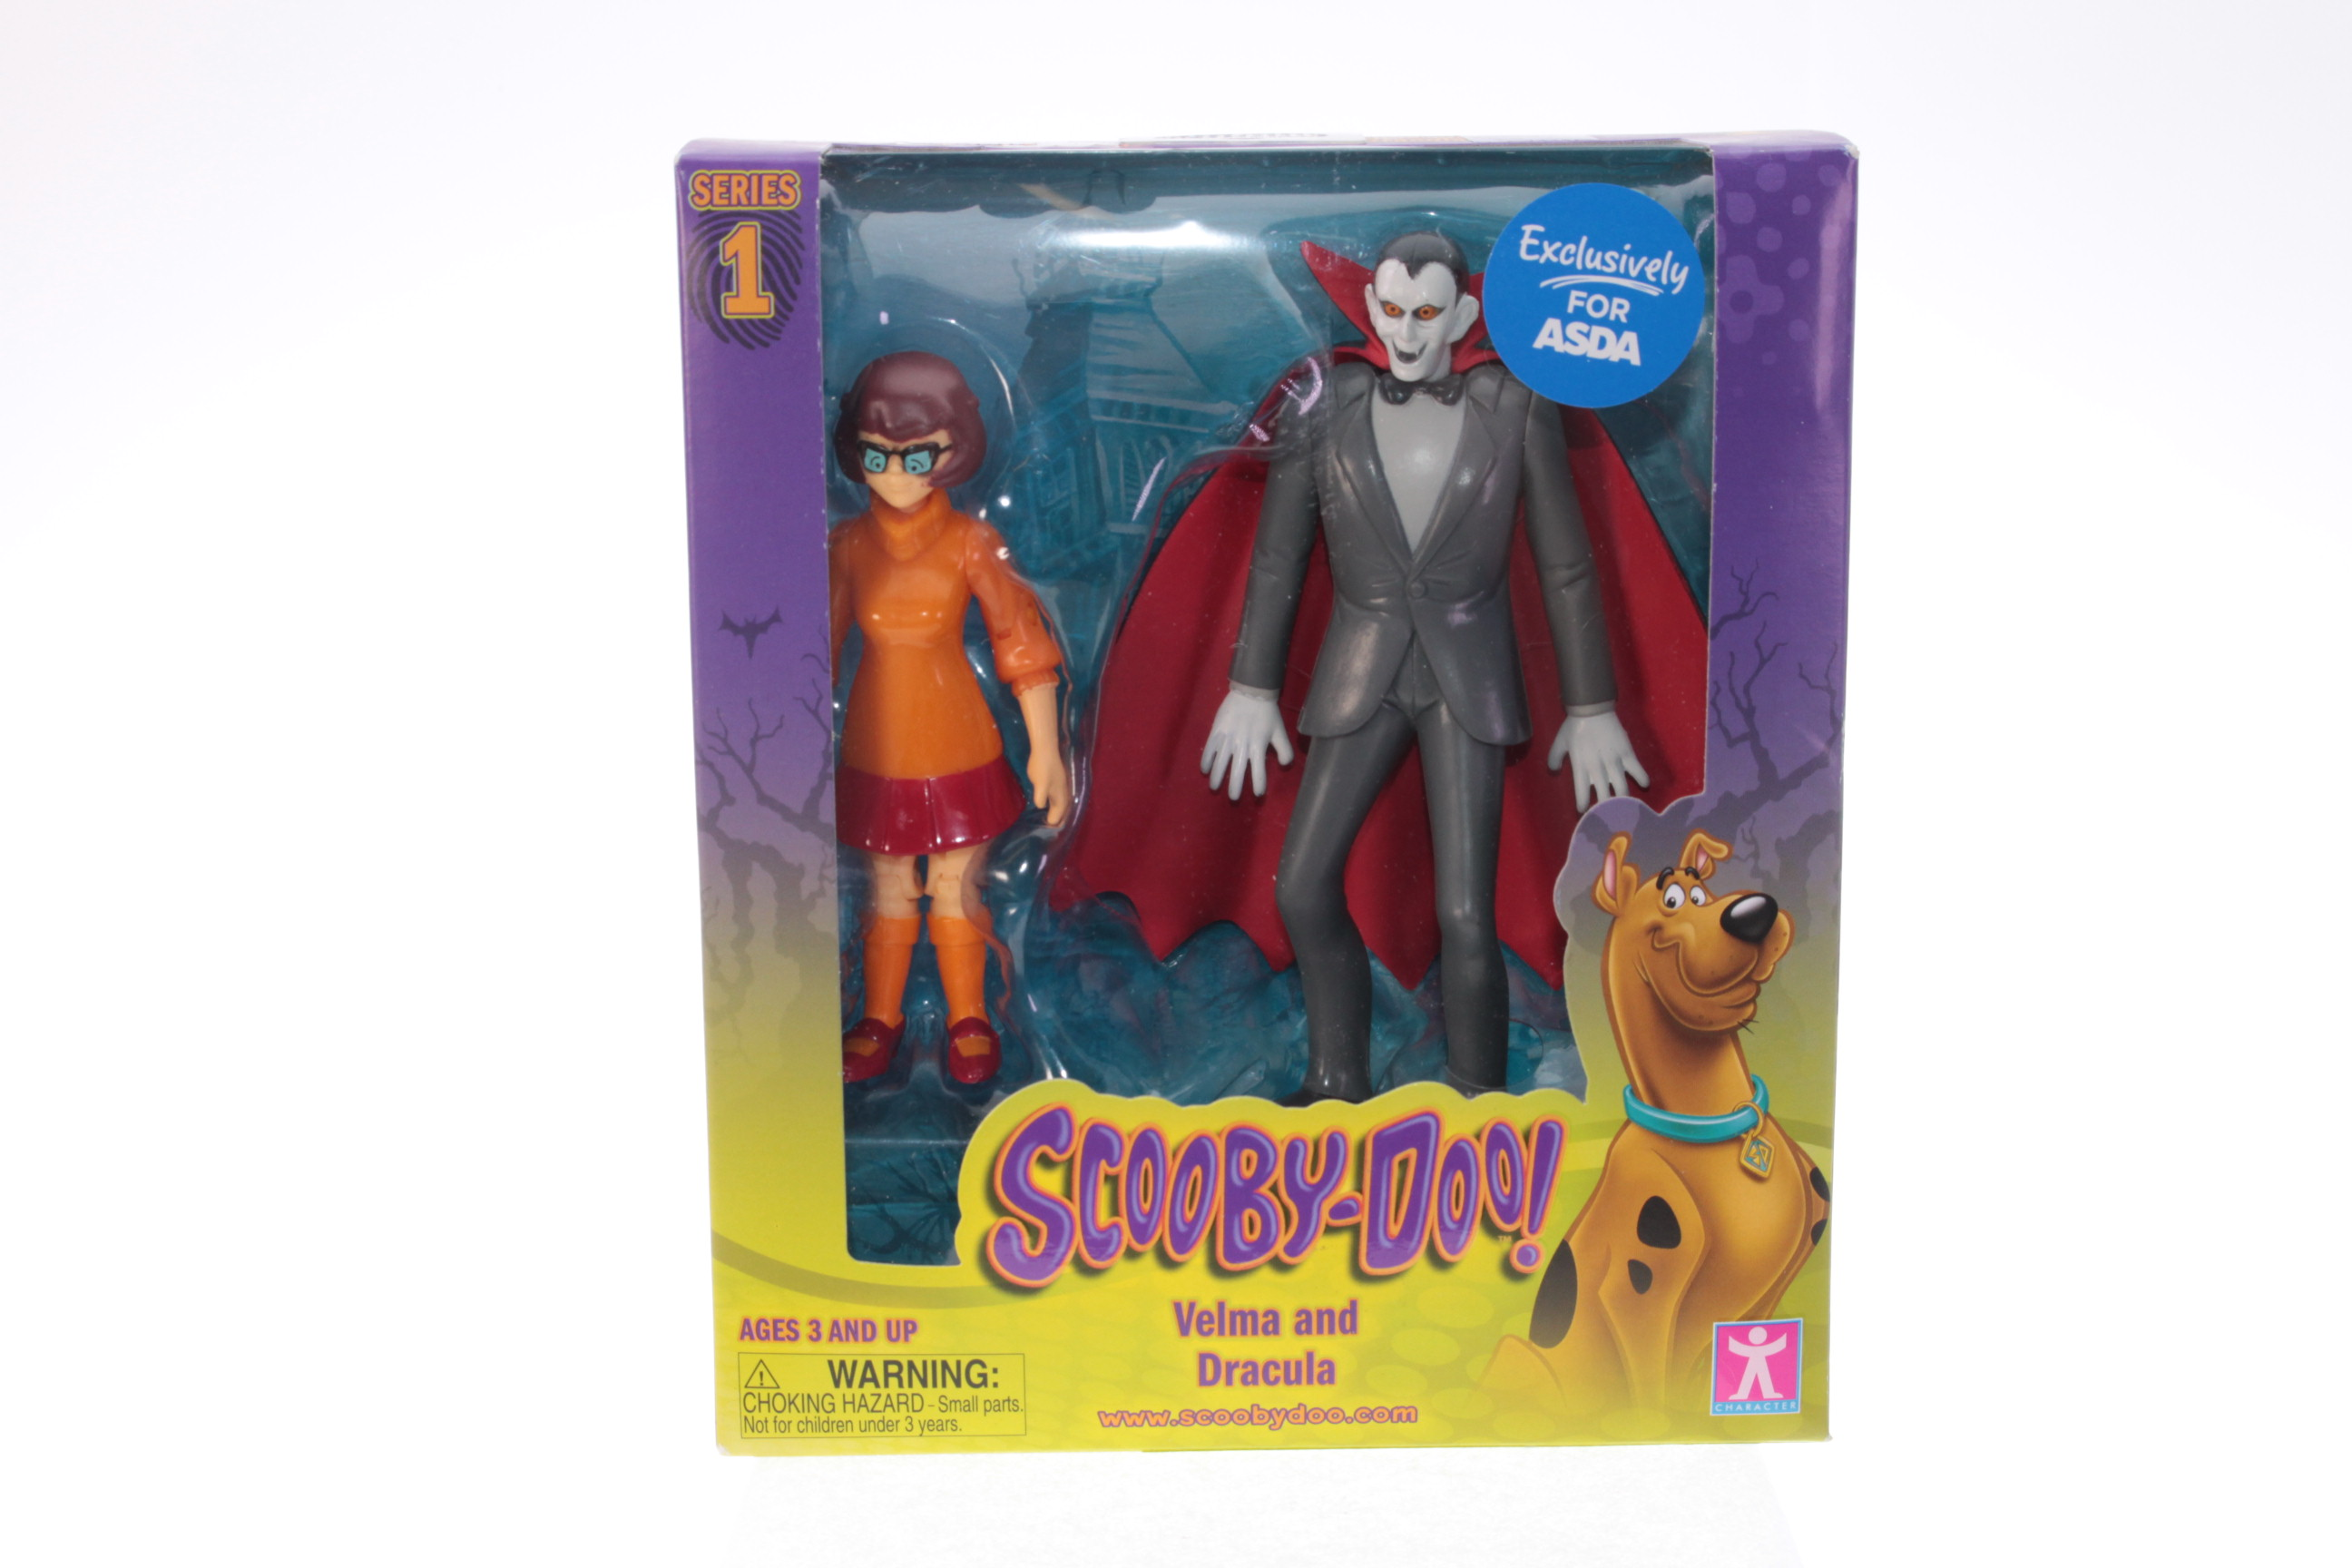 """rare Scooby Doo Series FRANKENSTEION 2.5/"""" action figure classic toy gift"""